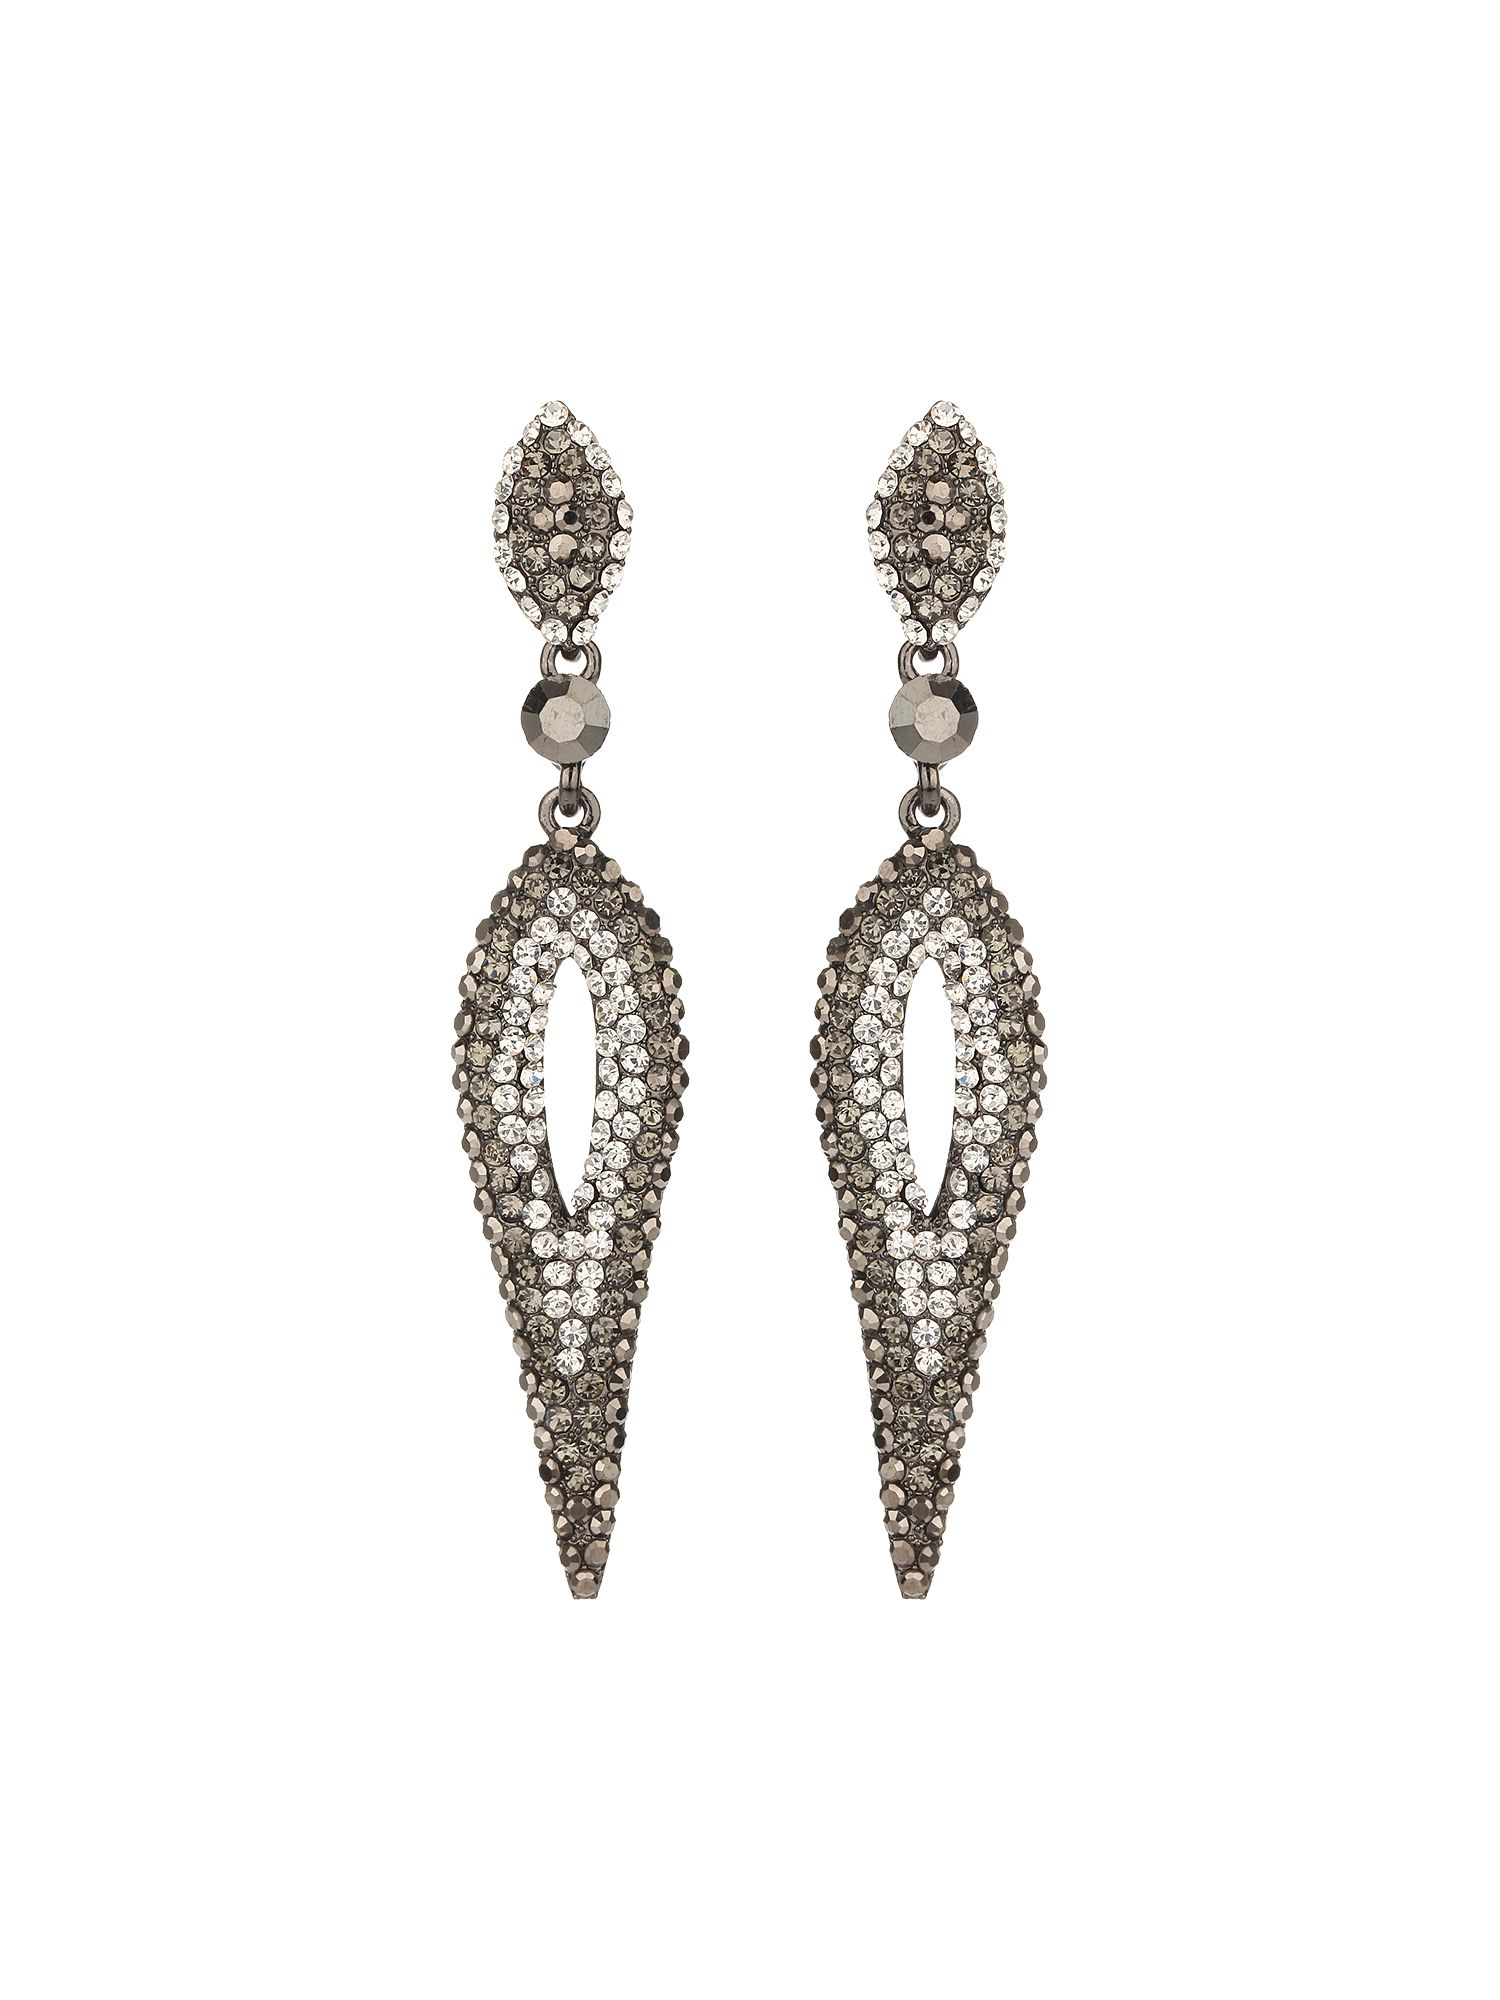 Oval long hanging earring